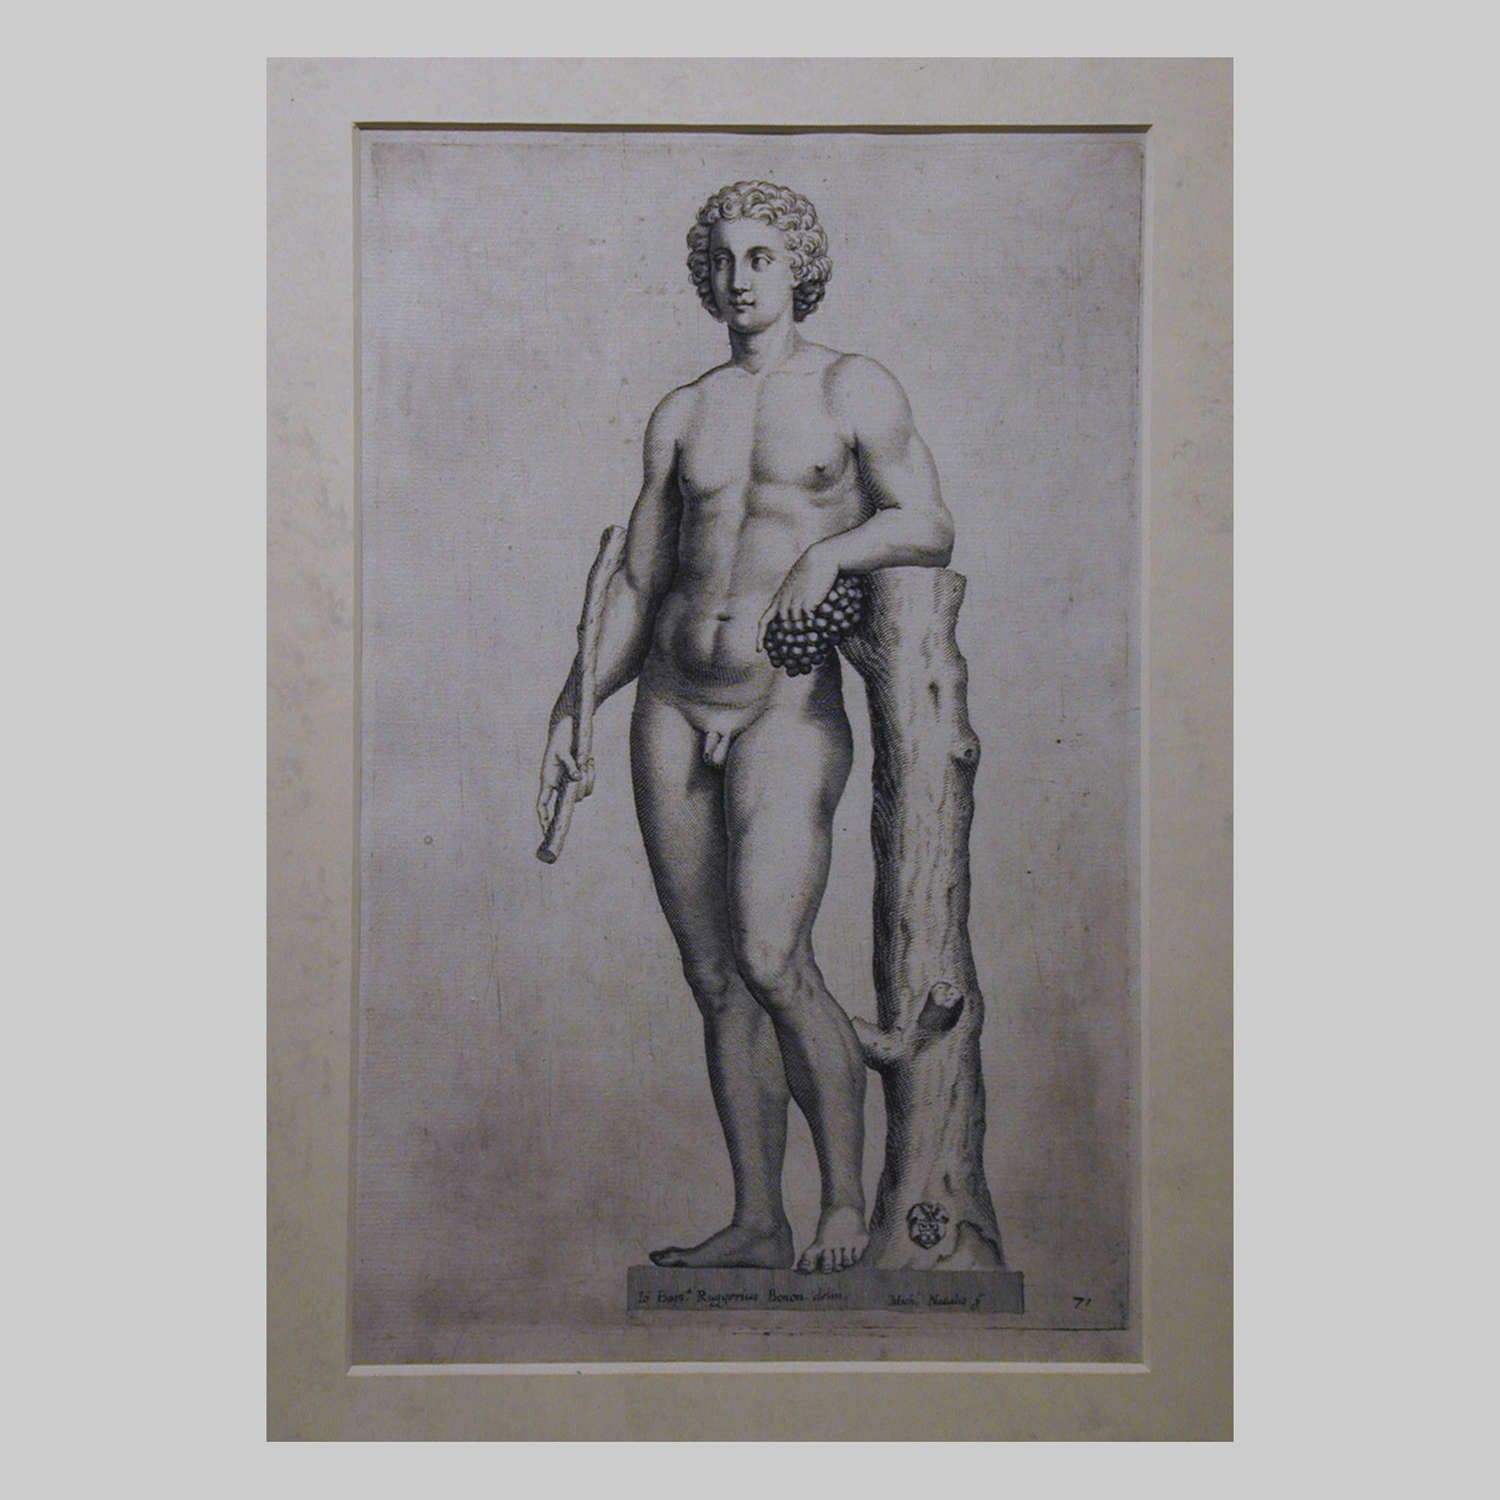 17th century engraving of Bacchus with Grapes and Stick